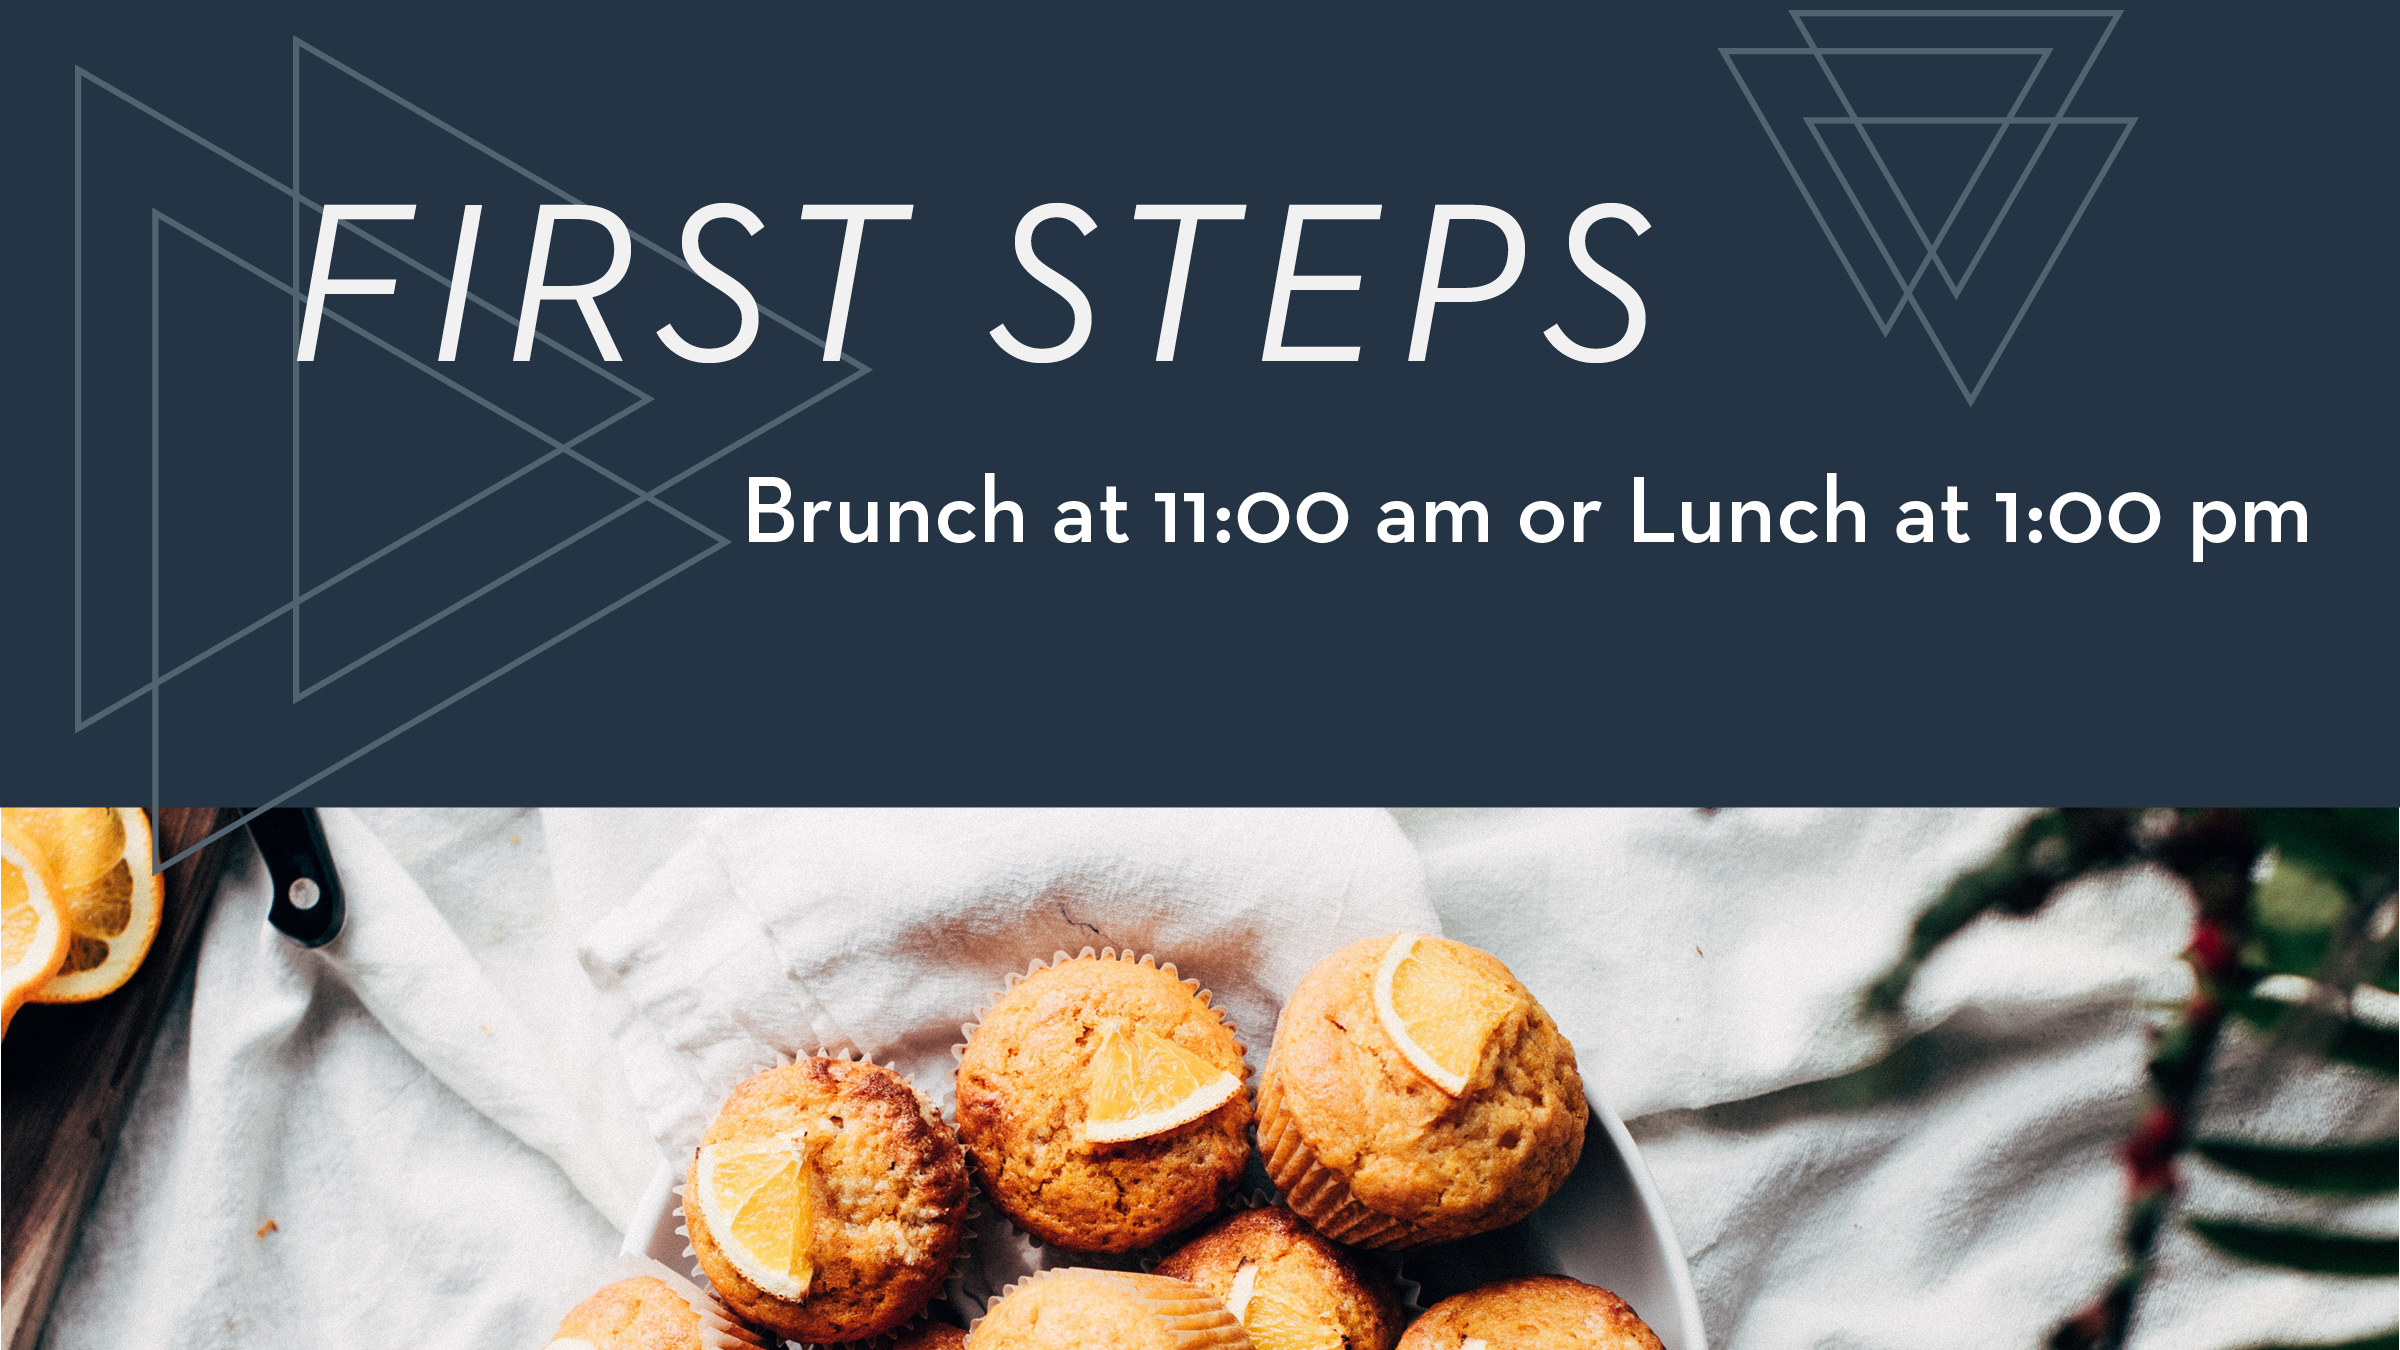 CLICK HERE TO RSVP TODAY!